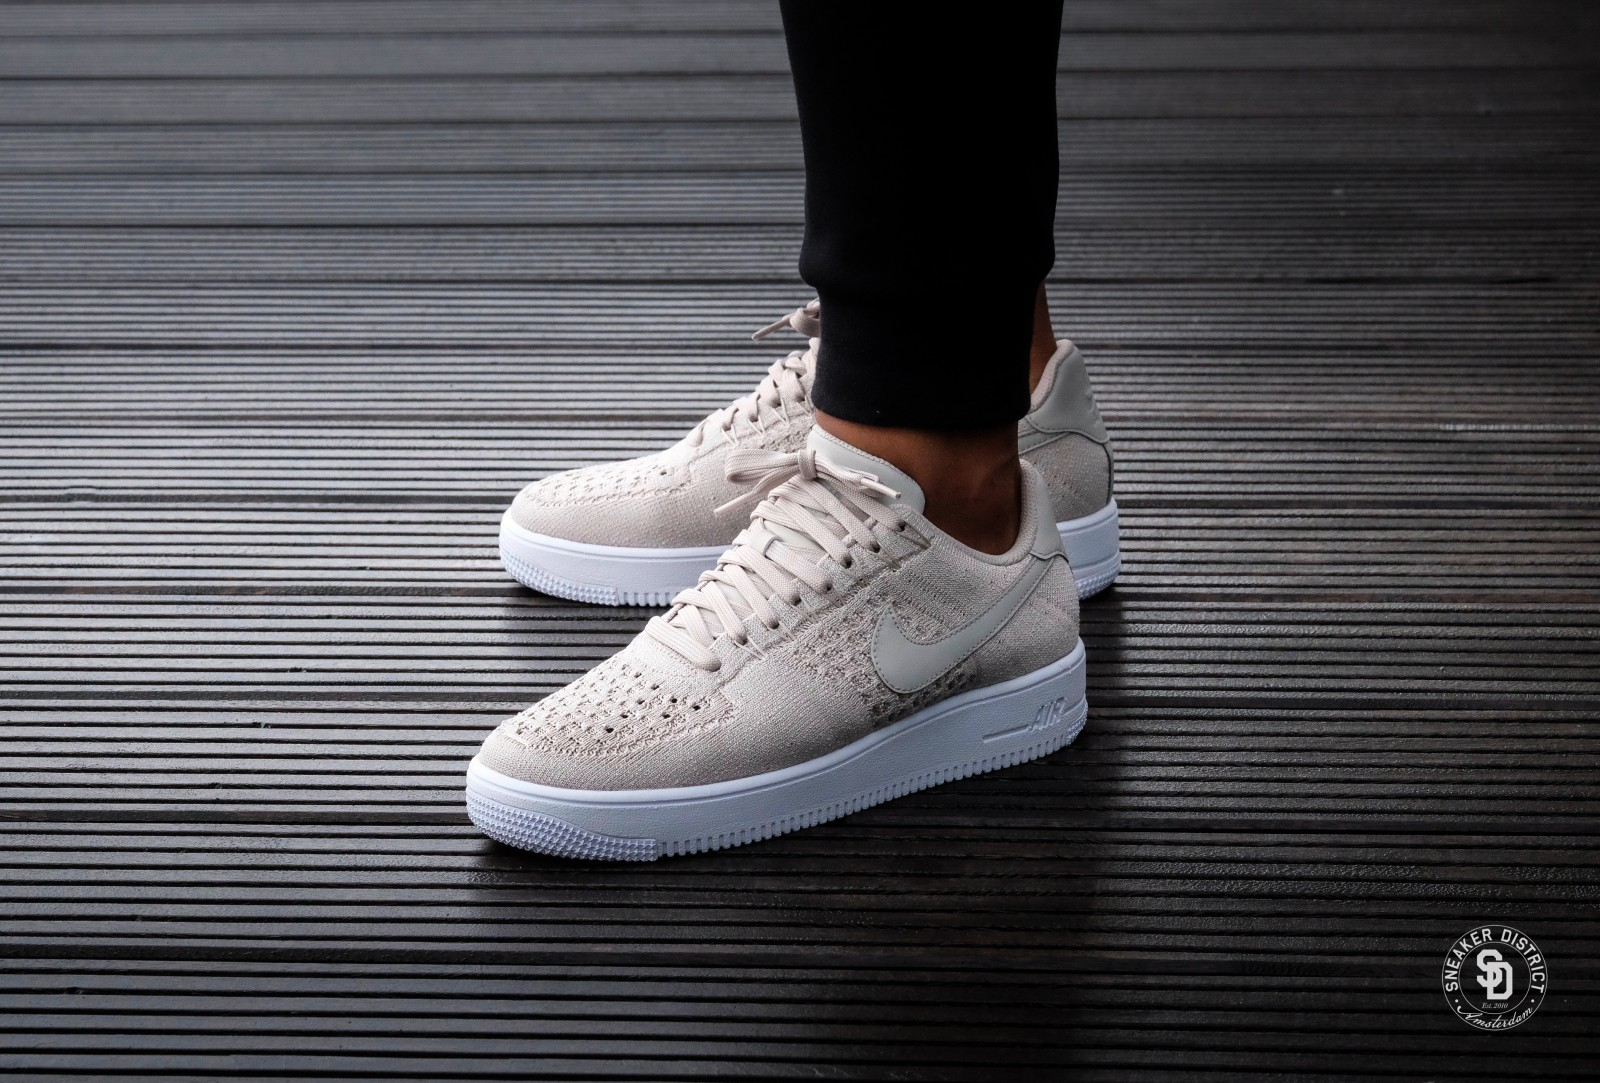 Nike Air Force 1 Ultra flyknit Low StringString White 817419 200